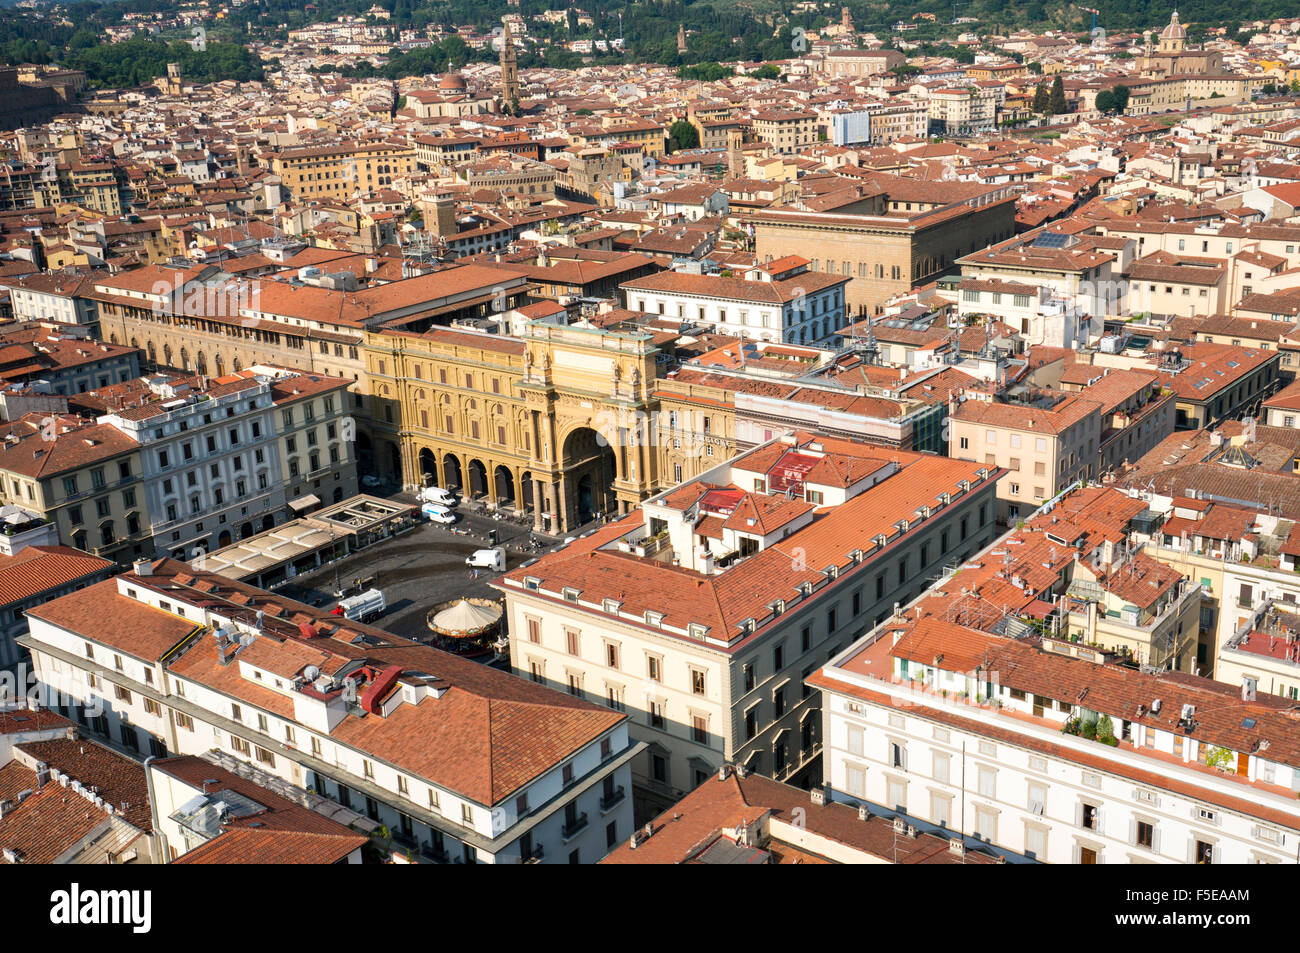 Aerial view from Giotto belltower of Piazza della Reppublica, Florence, Tuscany, Italy, Europe - Stock Image